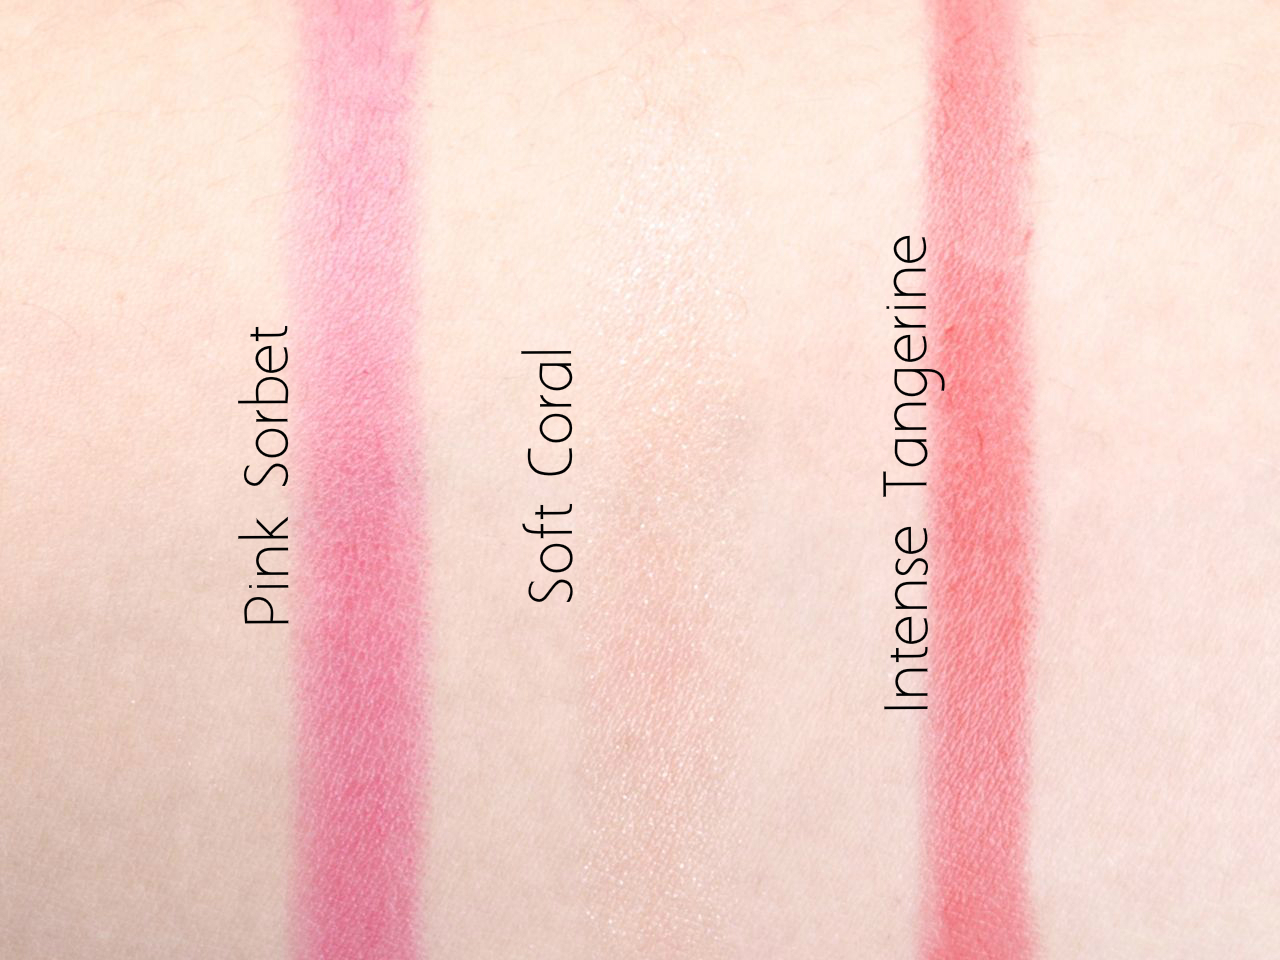 Yves Rocher Summer Creations 2015 Raideant Lip Crayon: Review and Swatches